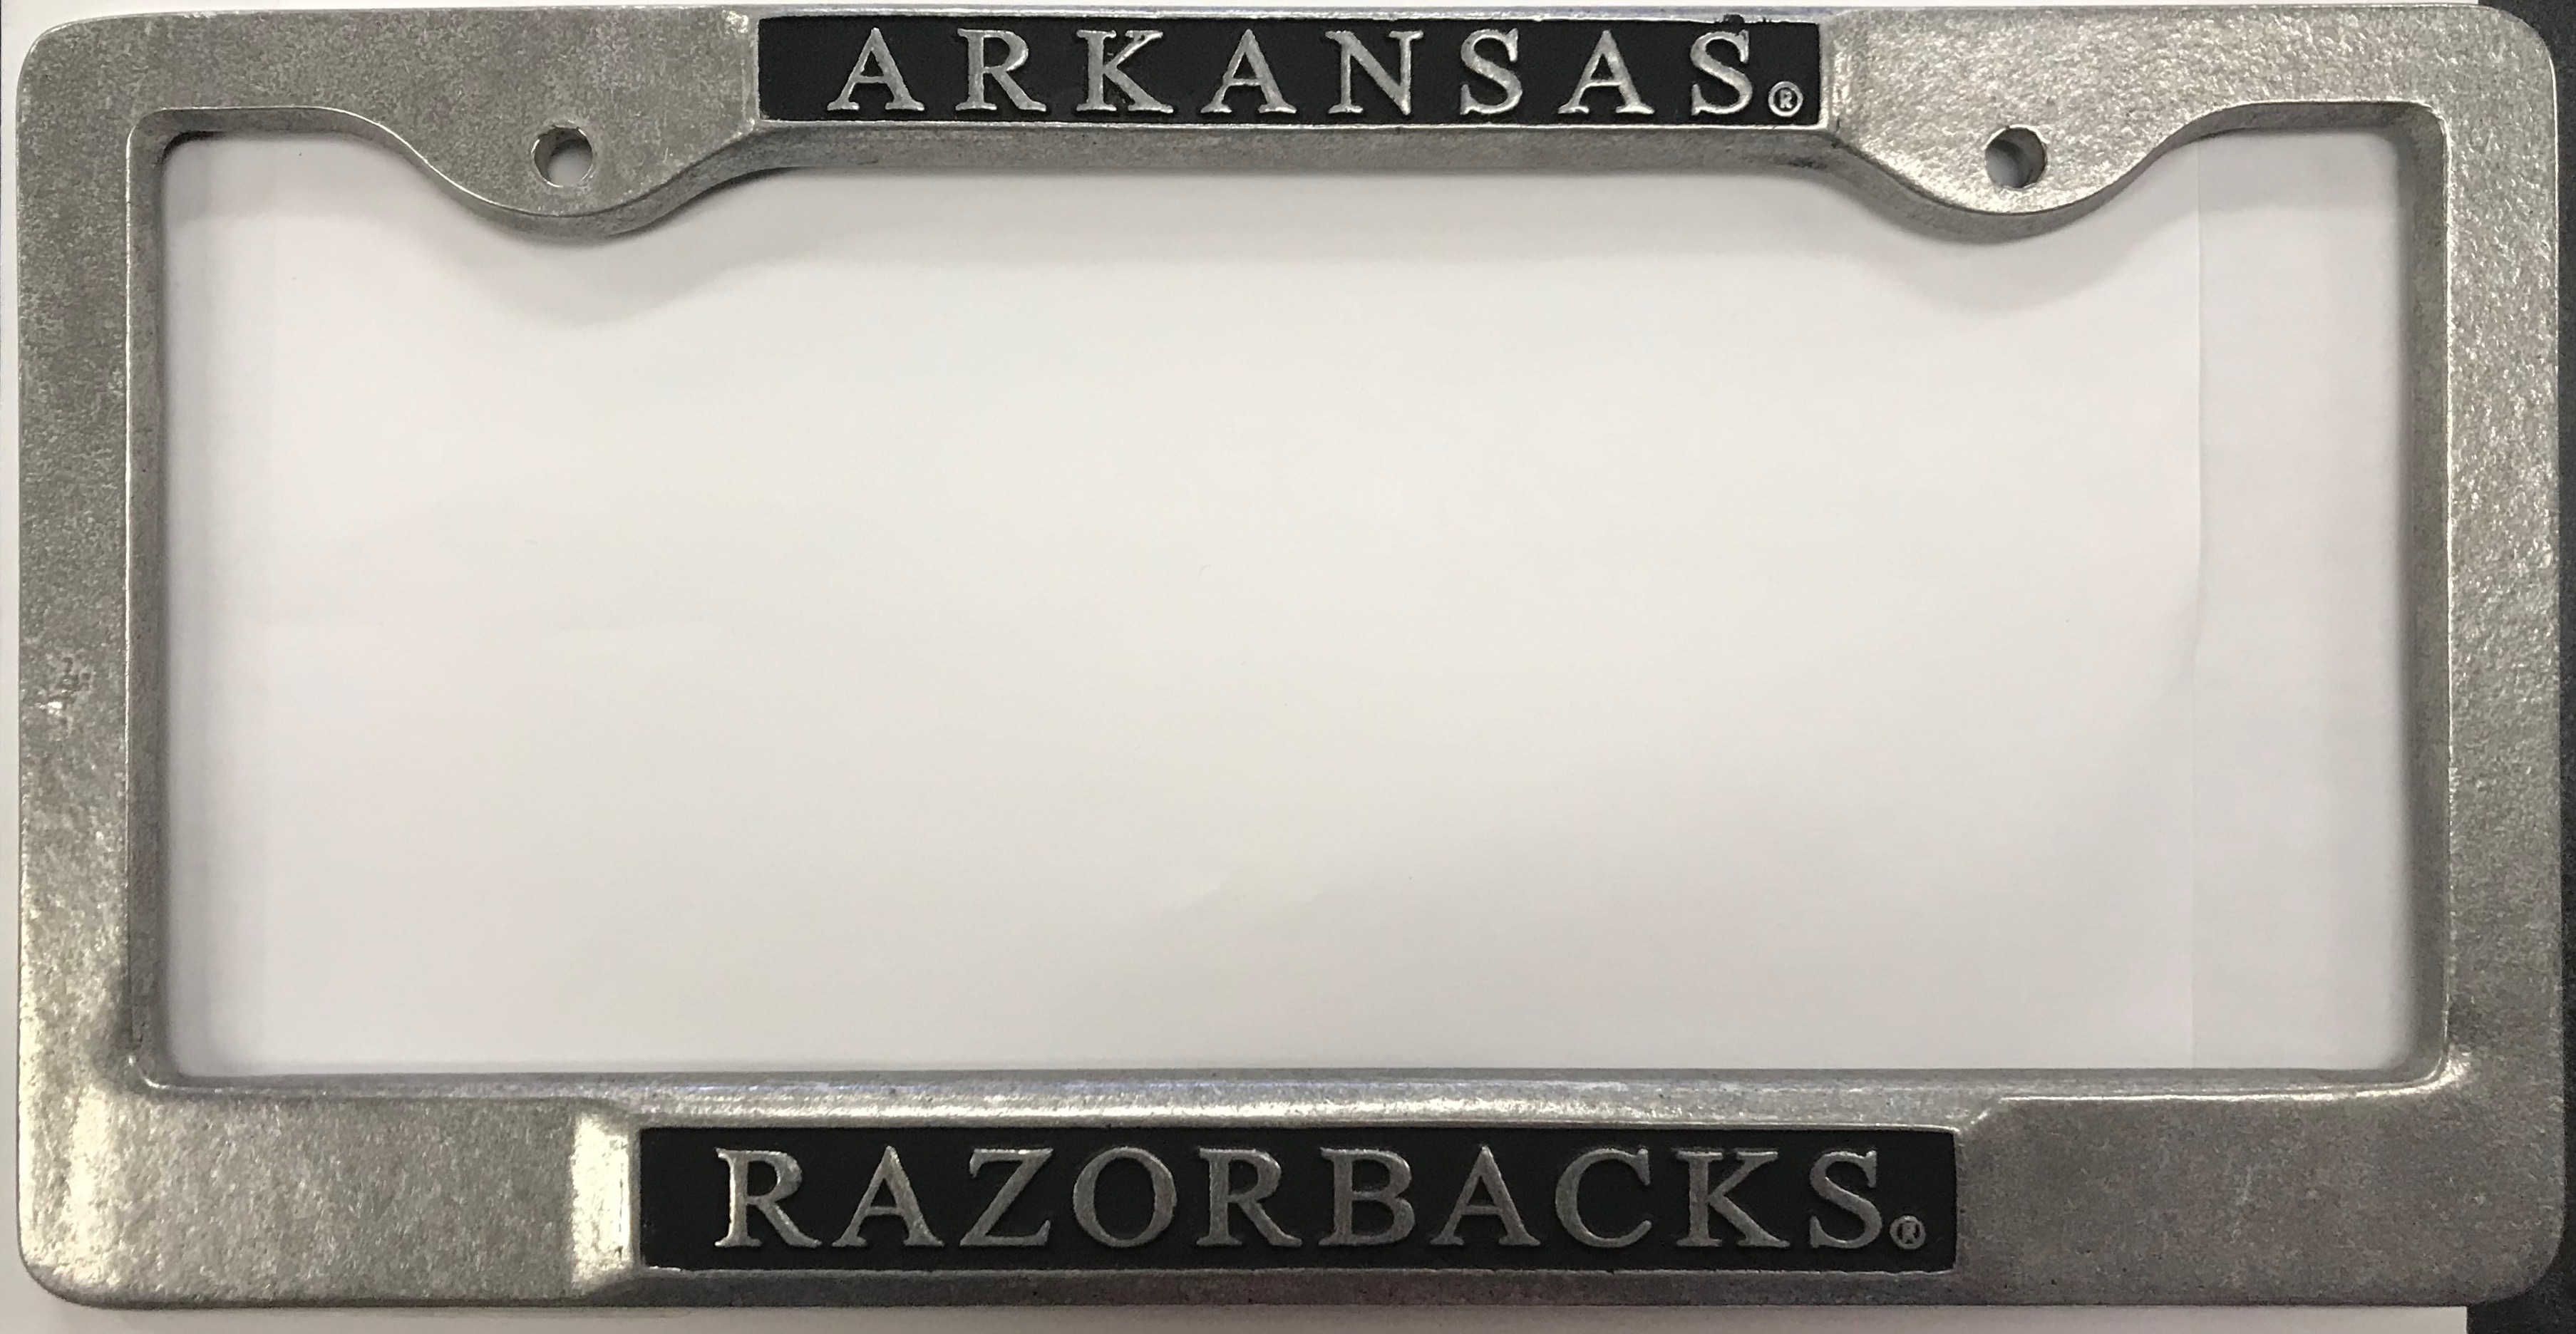 Chrome Arkansas Razorback License Plate Frame